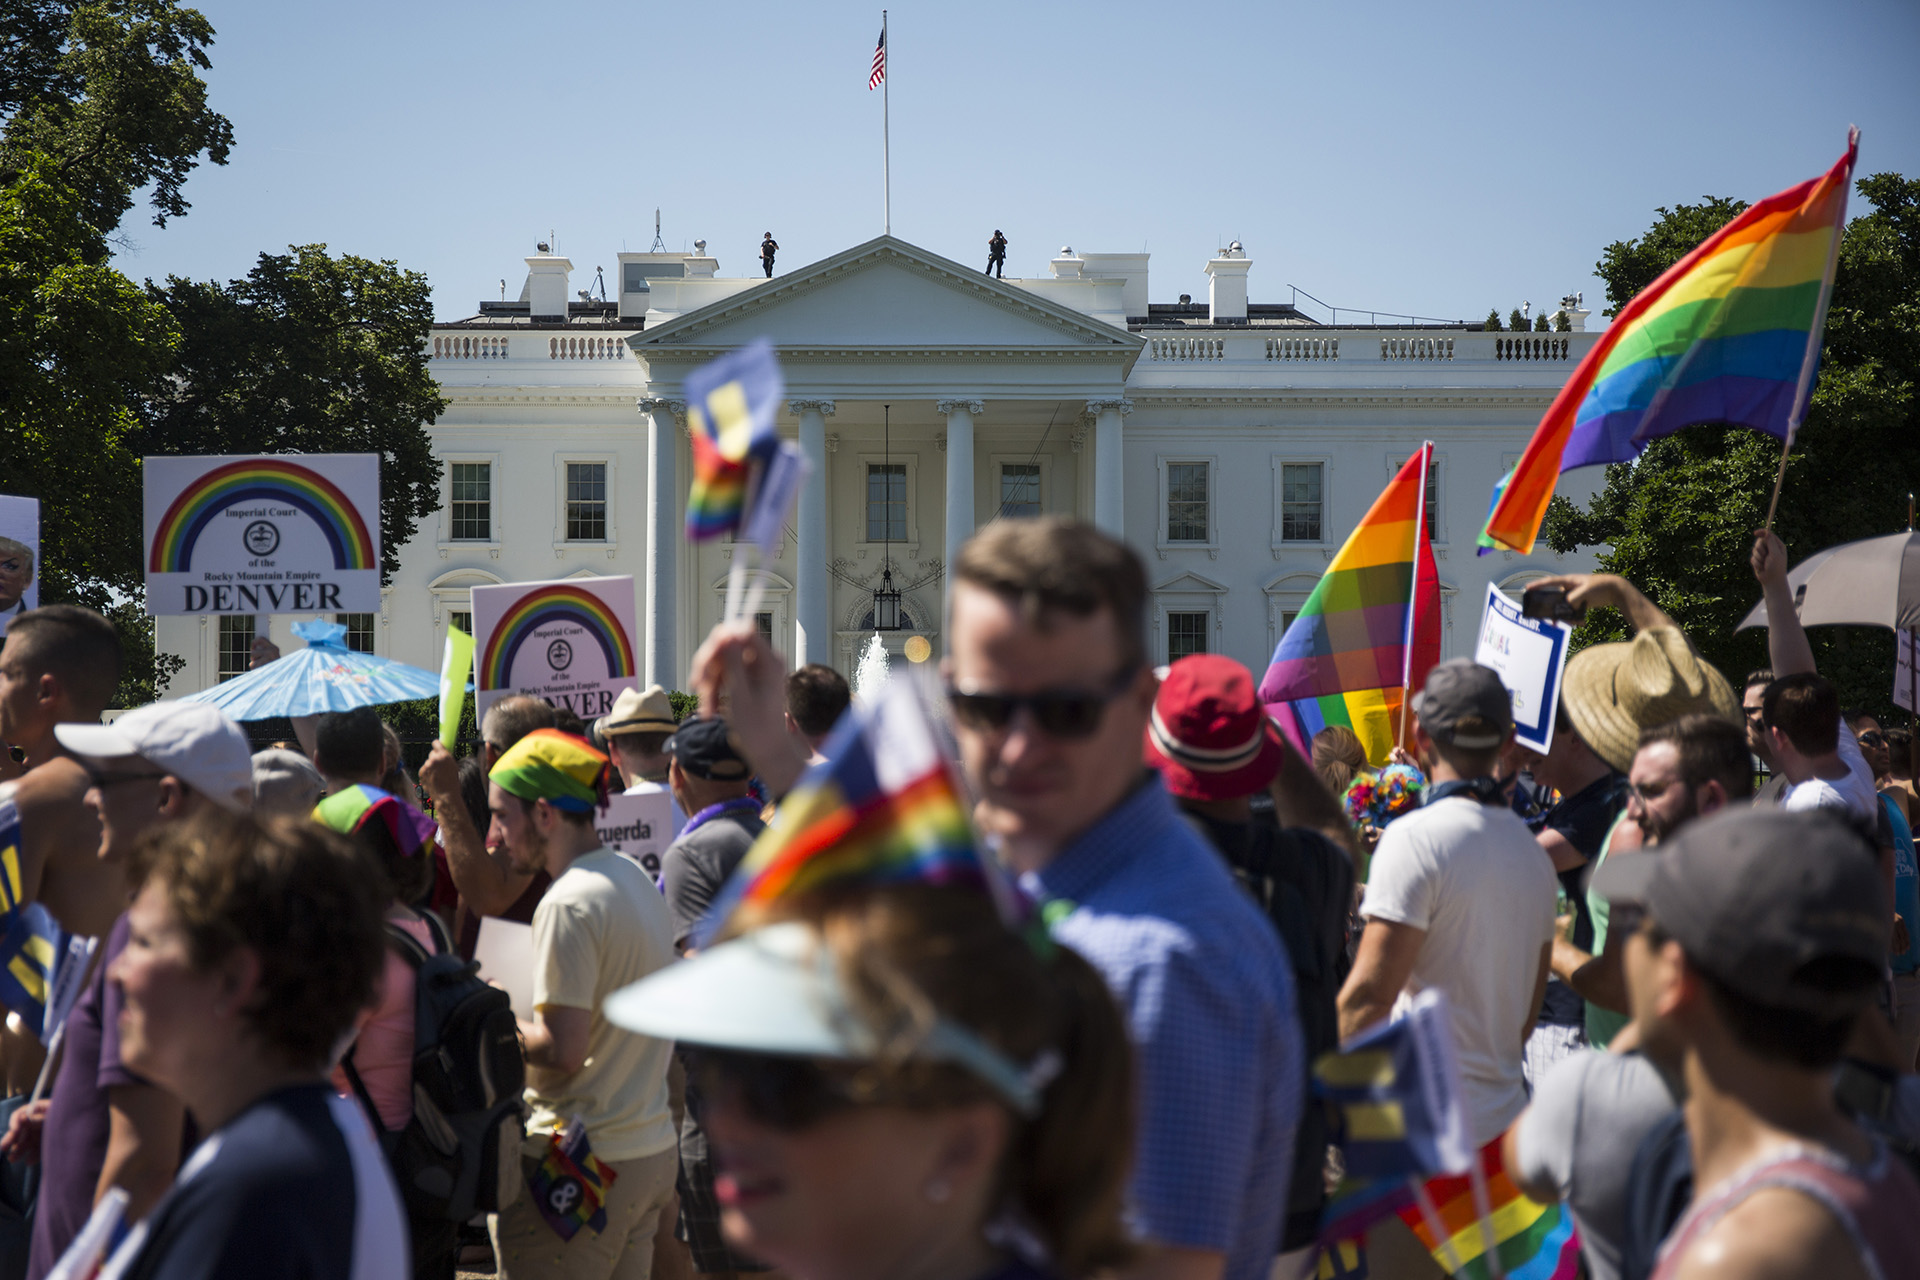 Miles de personas de la comunidad LGBT marcharon en Washington el domingo ( Fotos Getty Images)